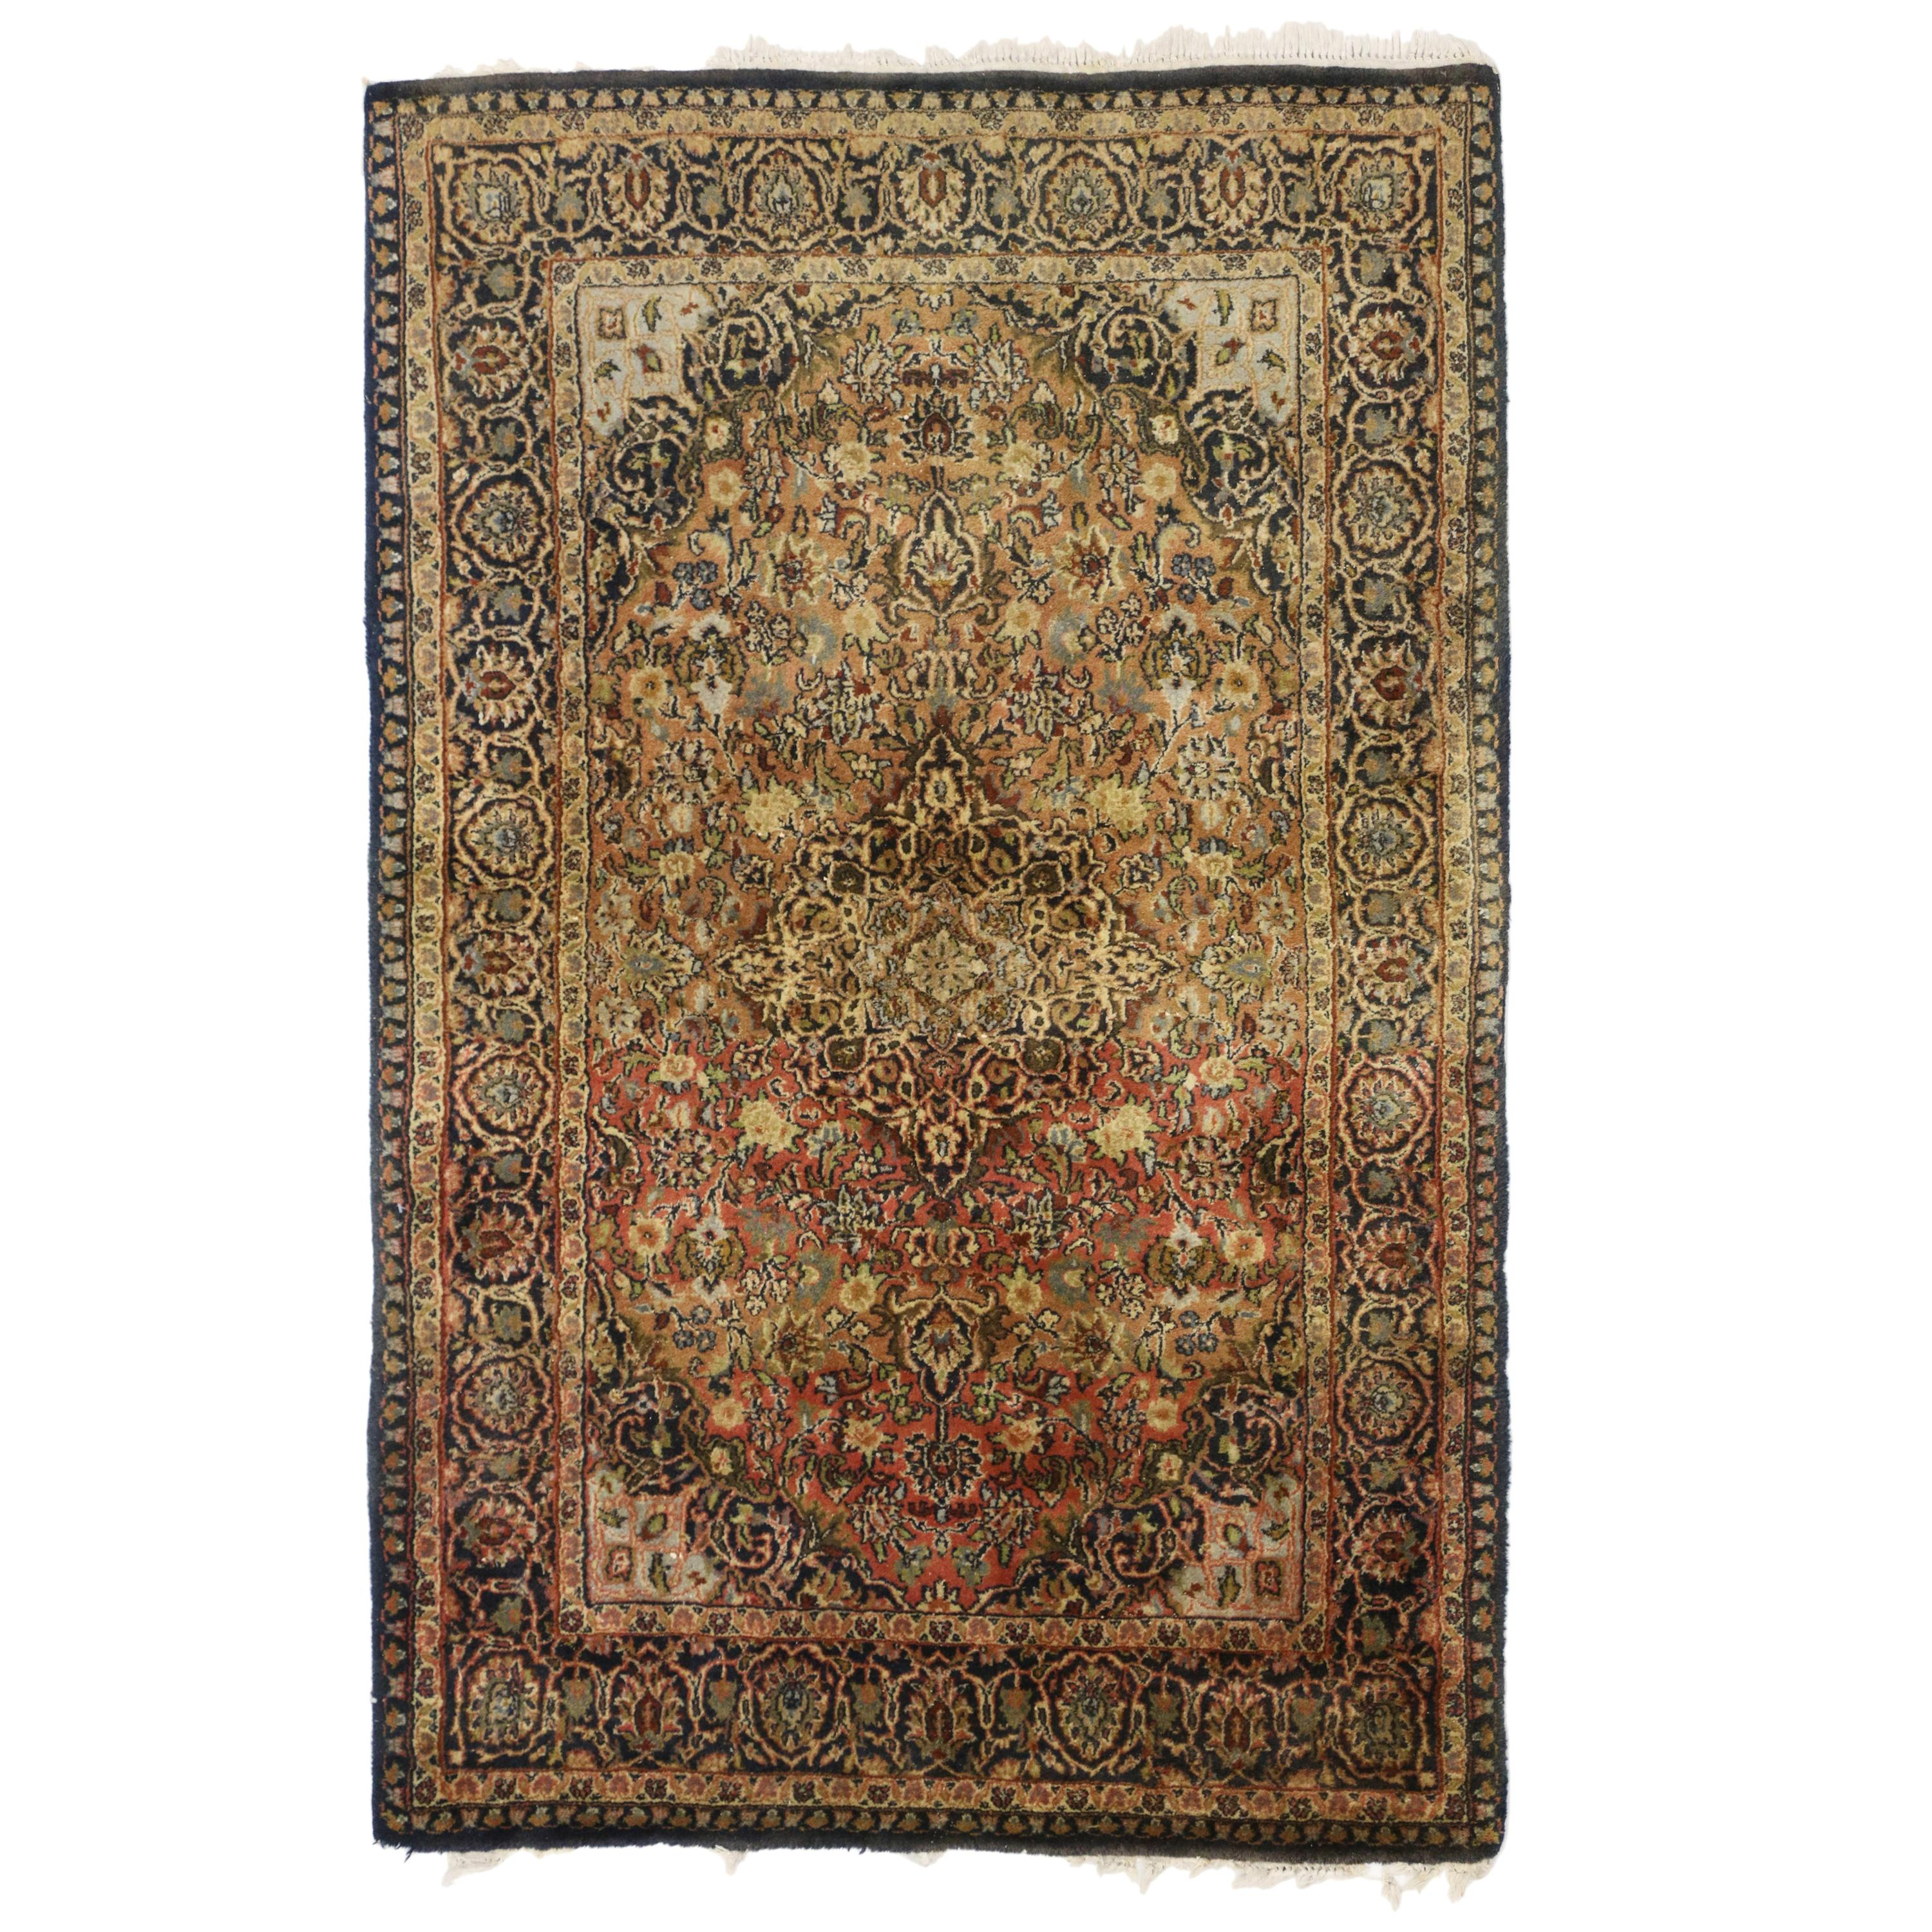 Vintage Persian Kashan Accent Rug with Spanish Colonial Style